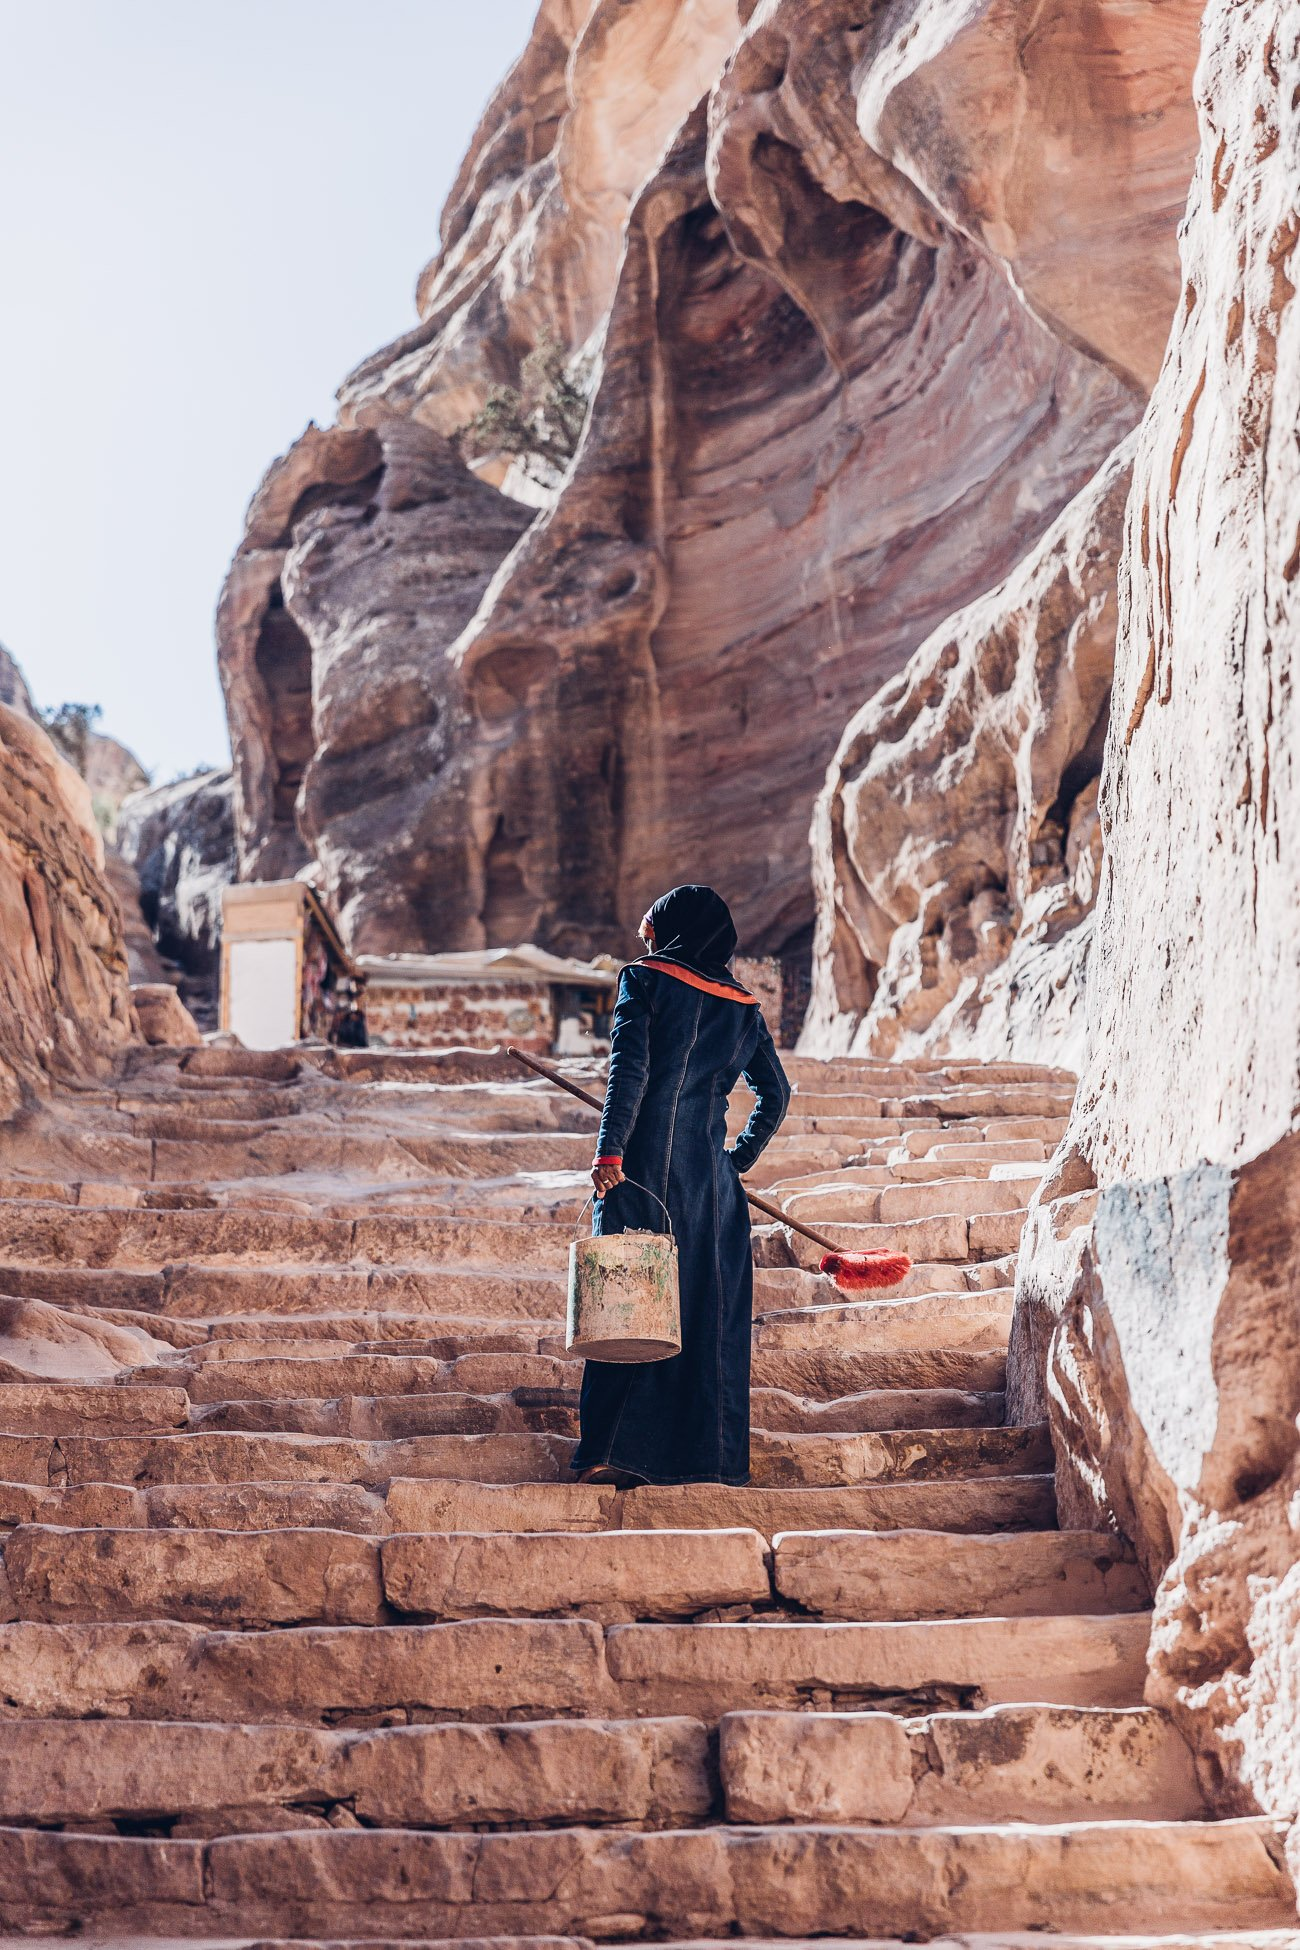 Bedouin woman in Petra Jordan